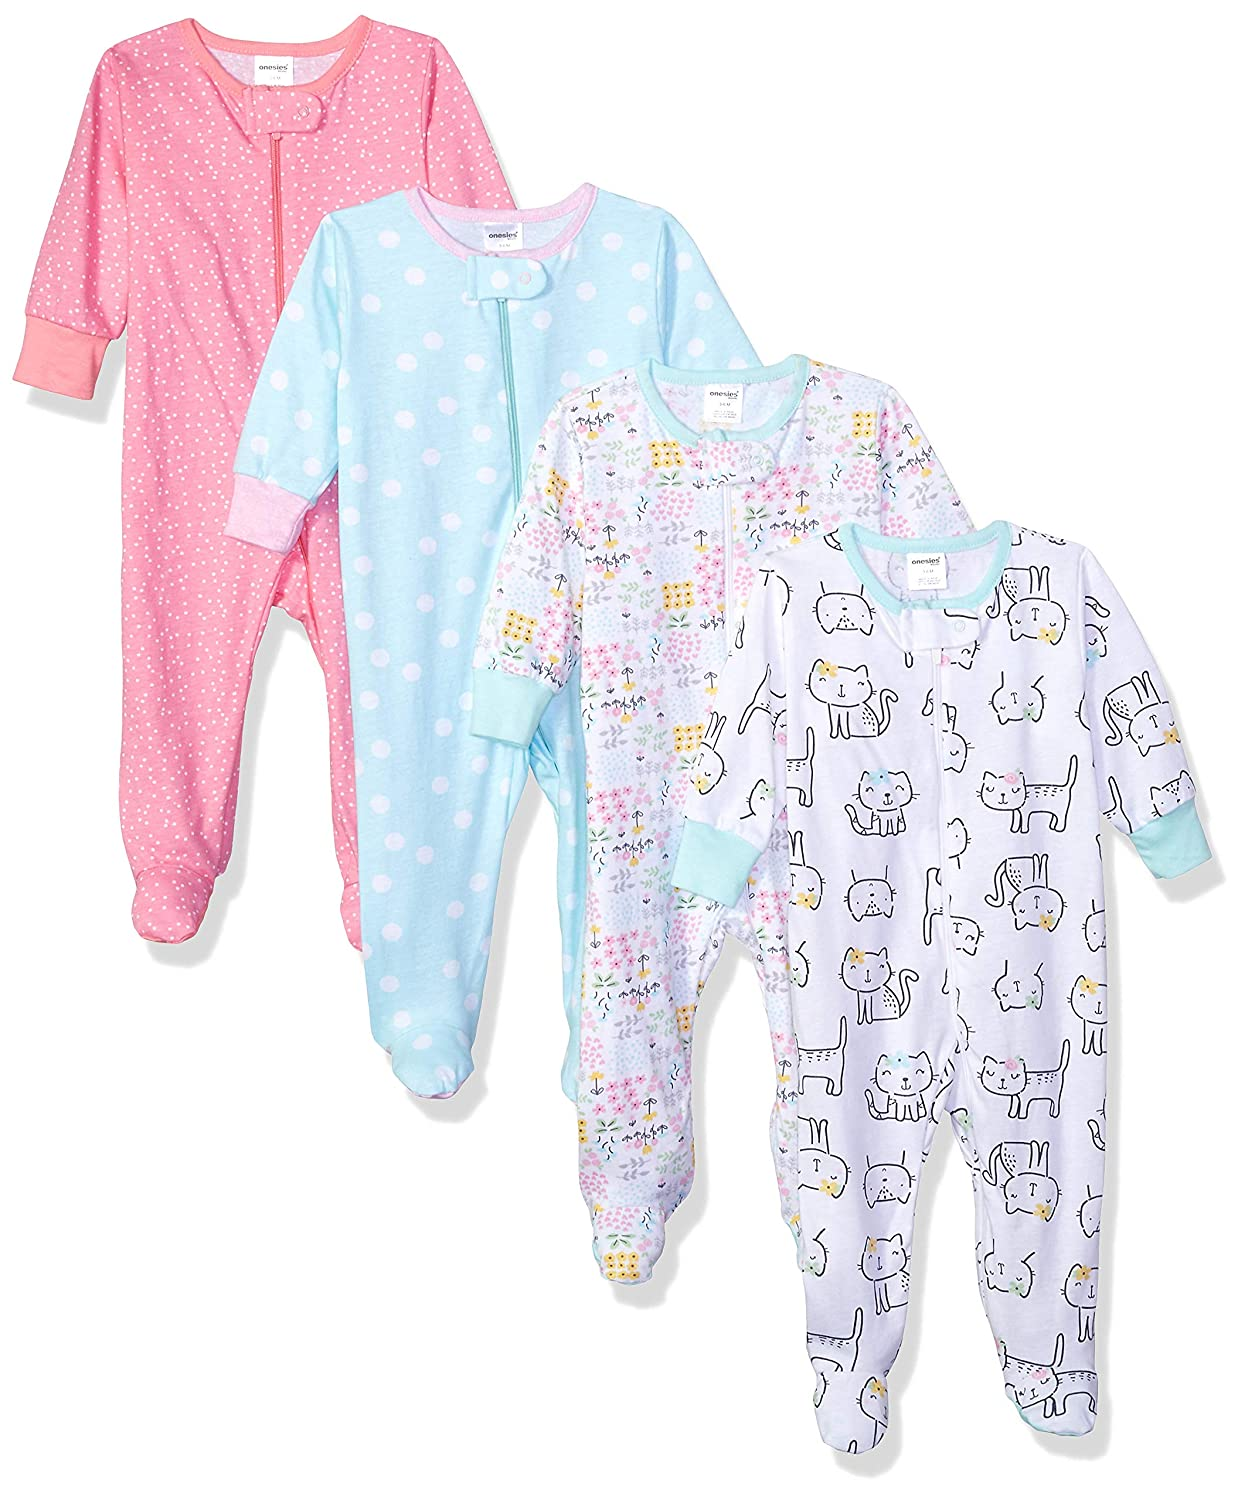 Onesies Brand Baby Girls' 4-Pack Sleep 'N Play Gerber Children' s Apparel